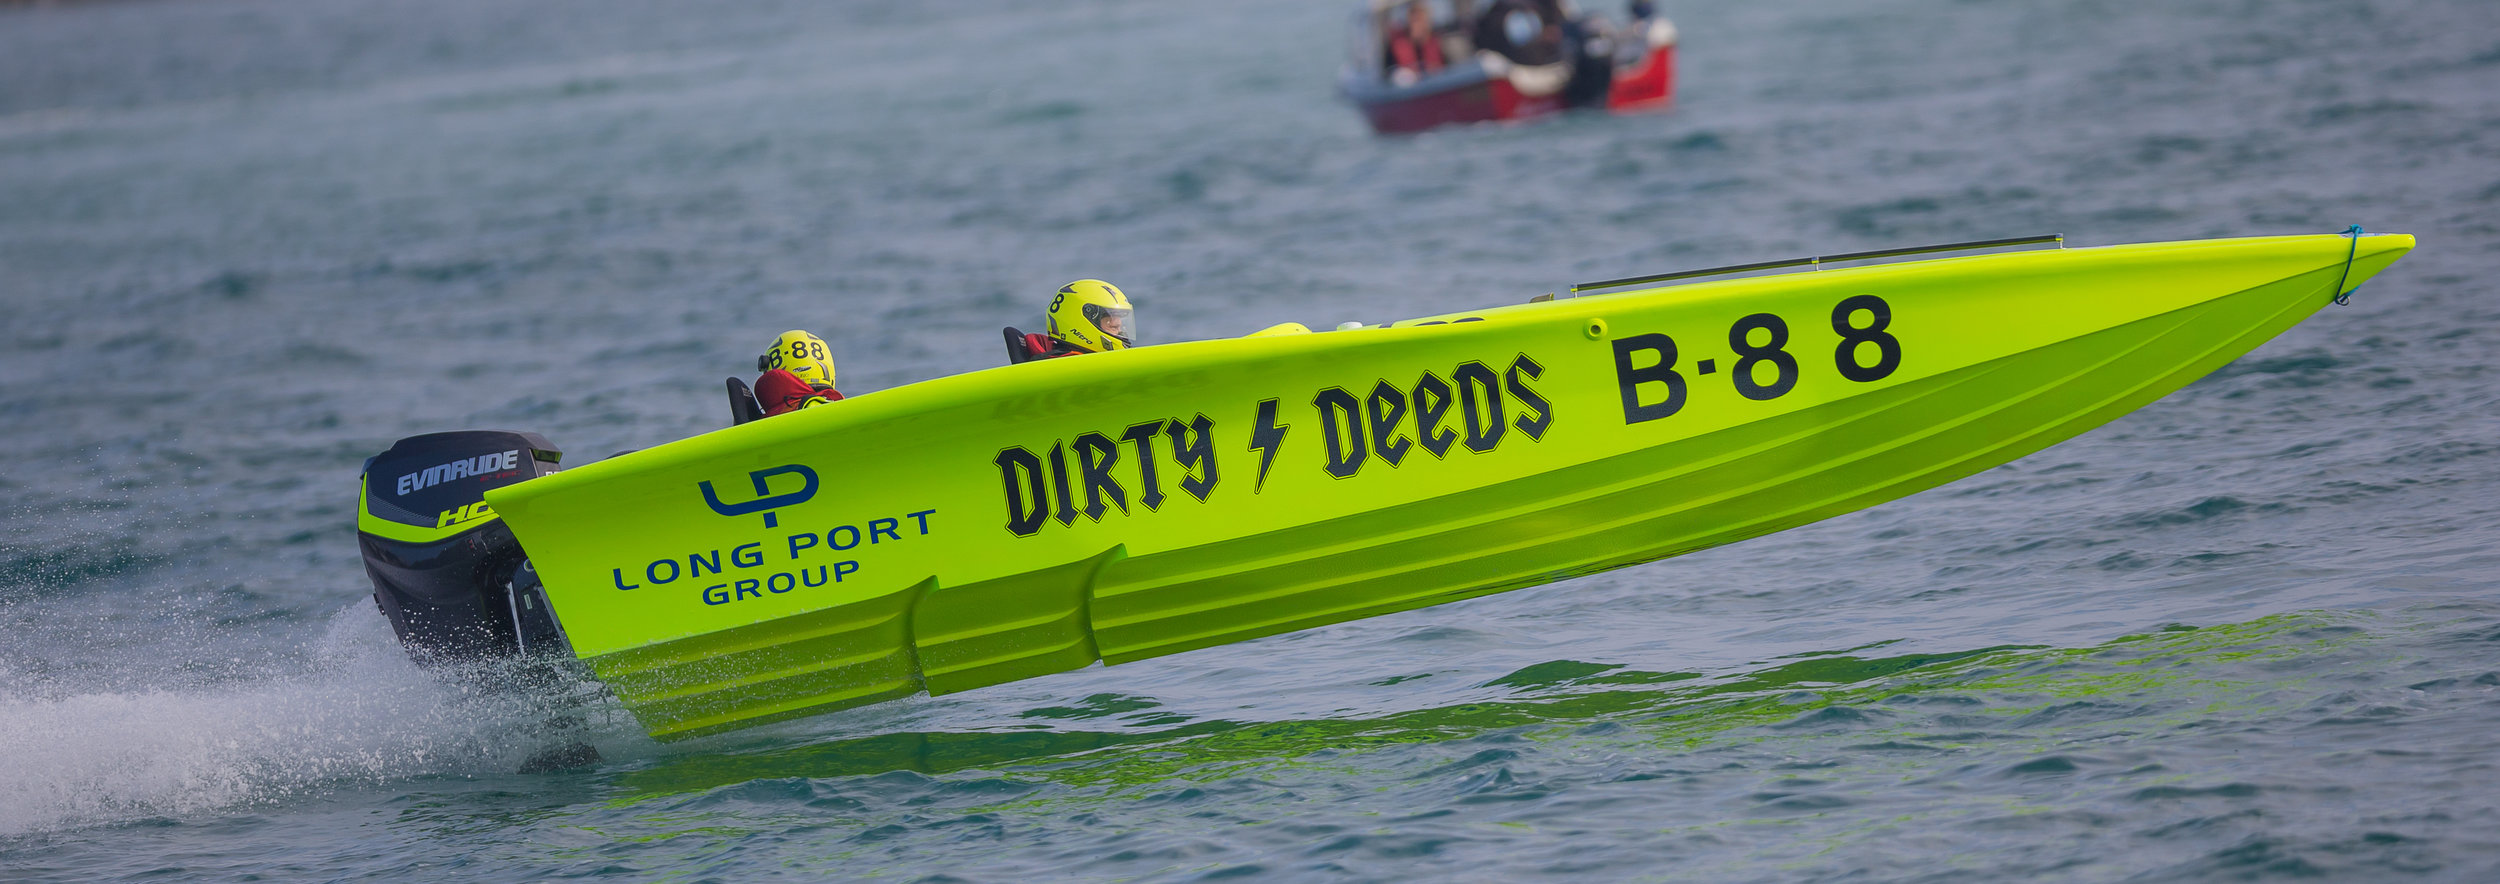 Guernsey Powerboat Association Stanley Gibbons Race Series R9 on the Havelet/Lowerheads course 17th September 2016...